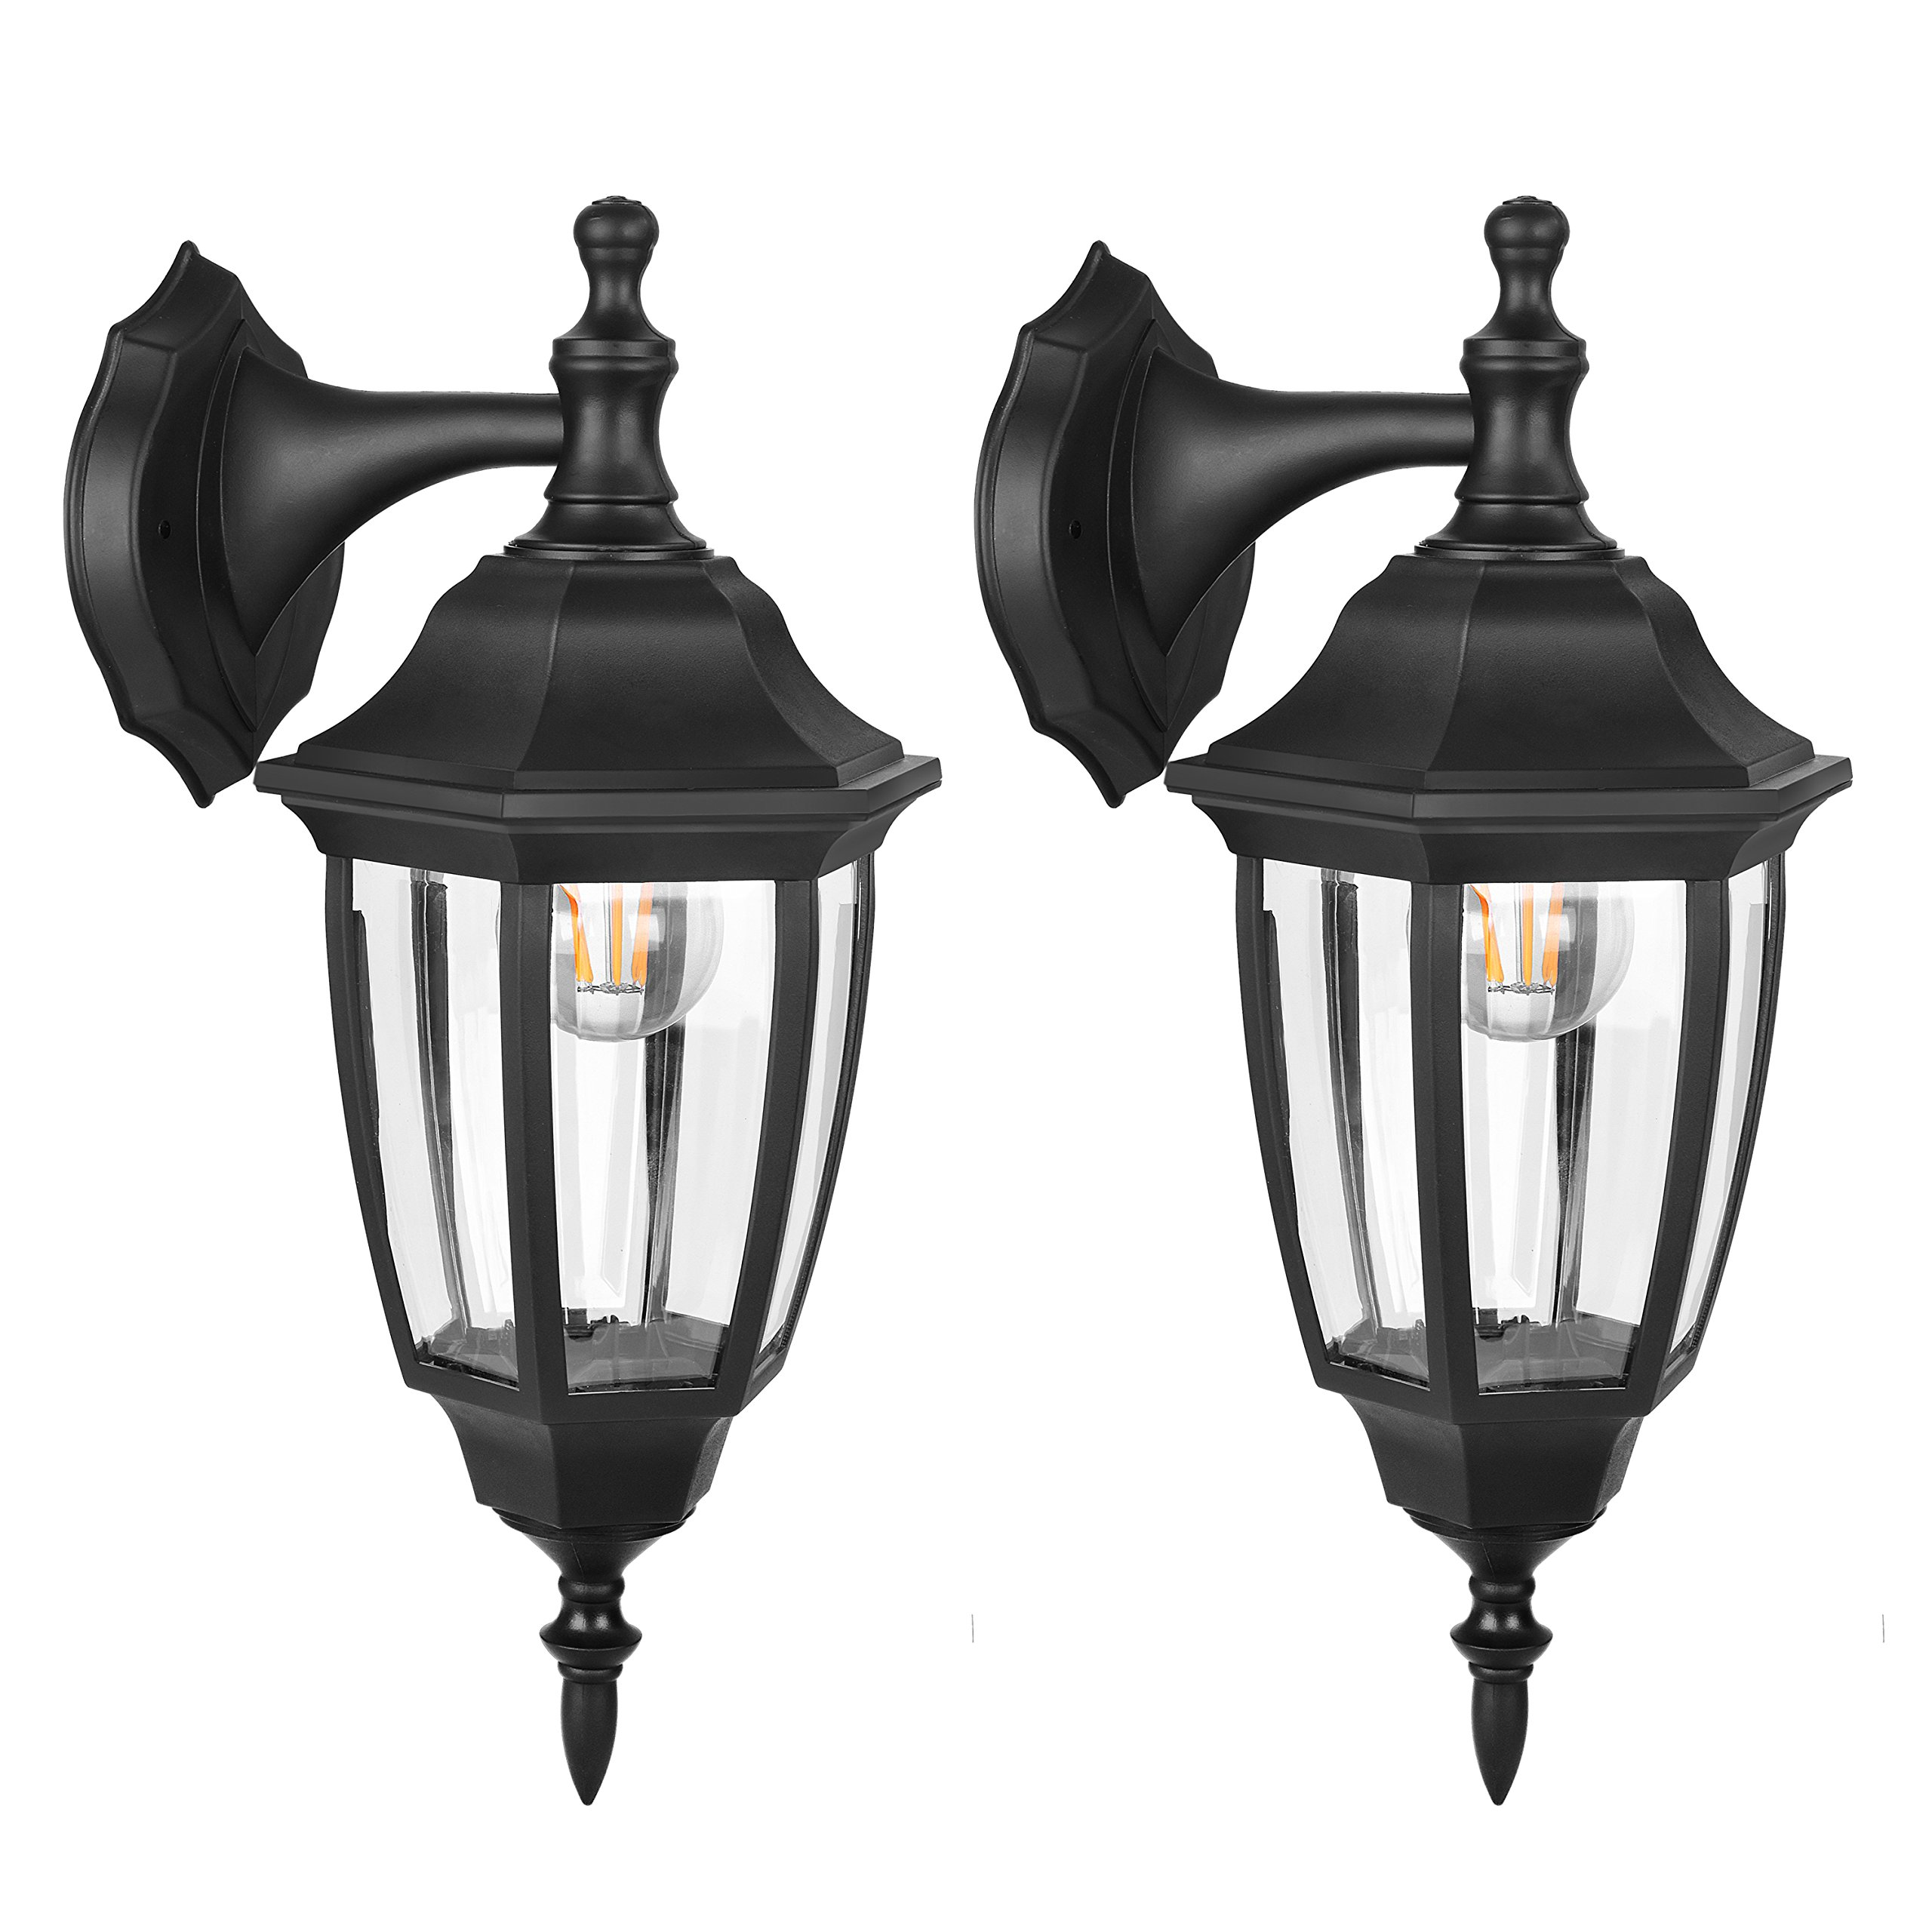 FUDESY Outdoor LED Wall Lanterns - Special Handling Anti-Corrosion Durable Plastic Material, Waterproof Exterior Wall Light Fixtures for Front Porch, Yard, Garage, etc. - 2 Pack